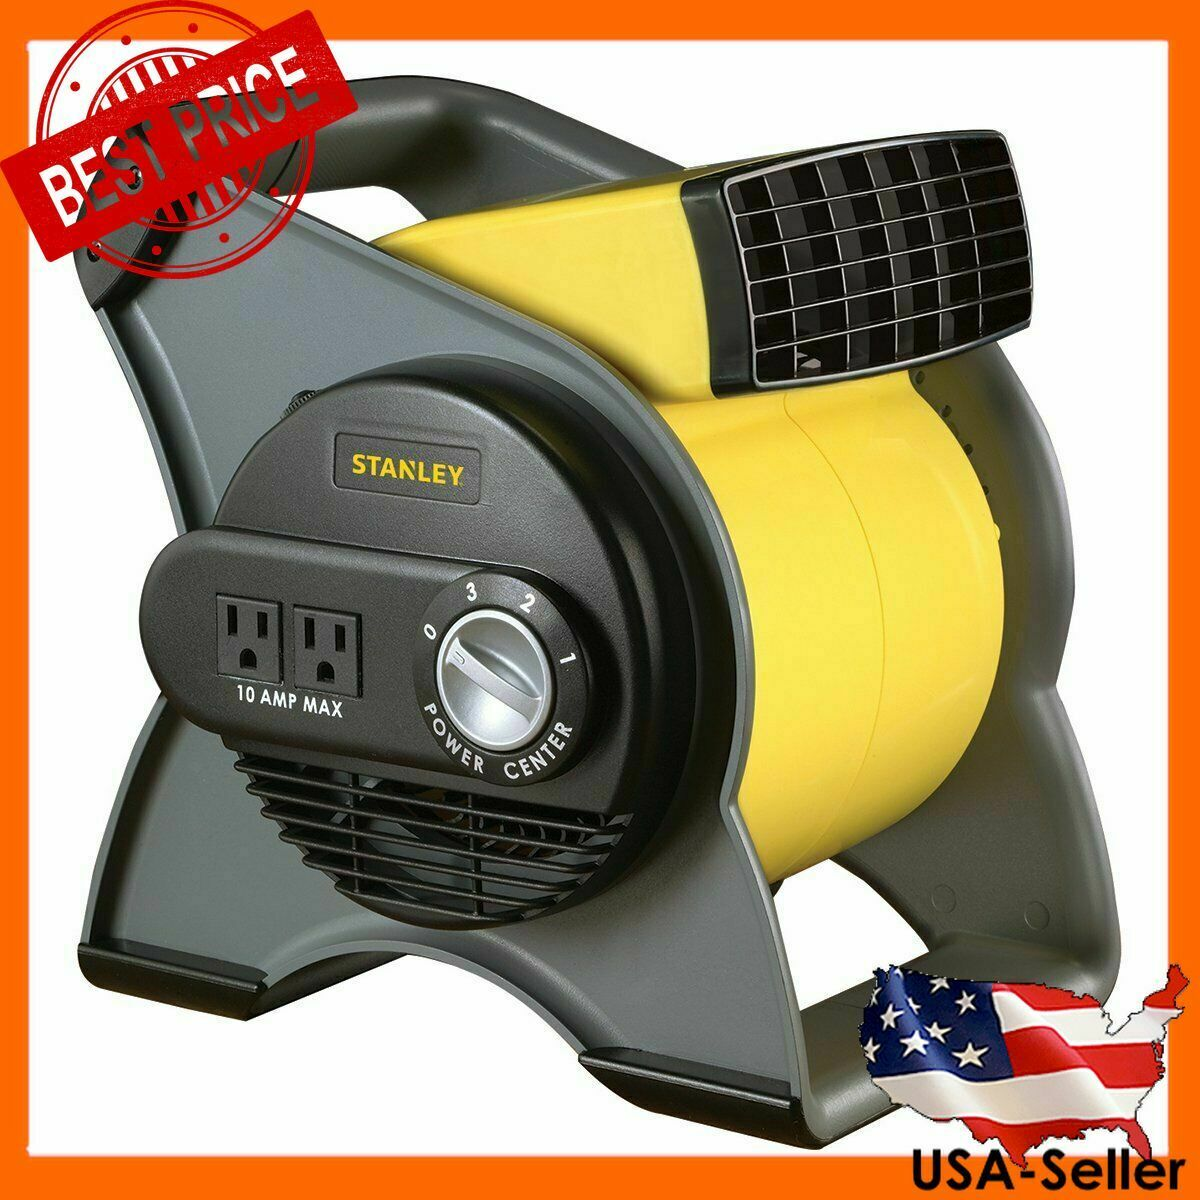 High Velocity Blower Fan - Features Pivoting Blower and Buil